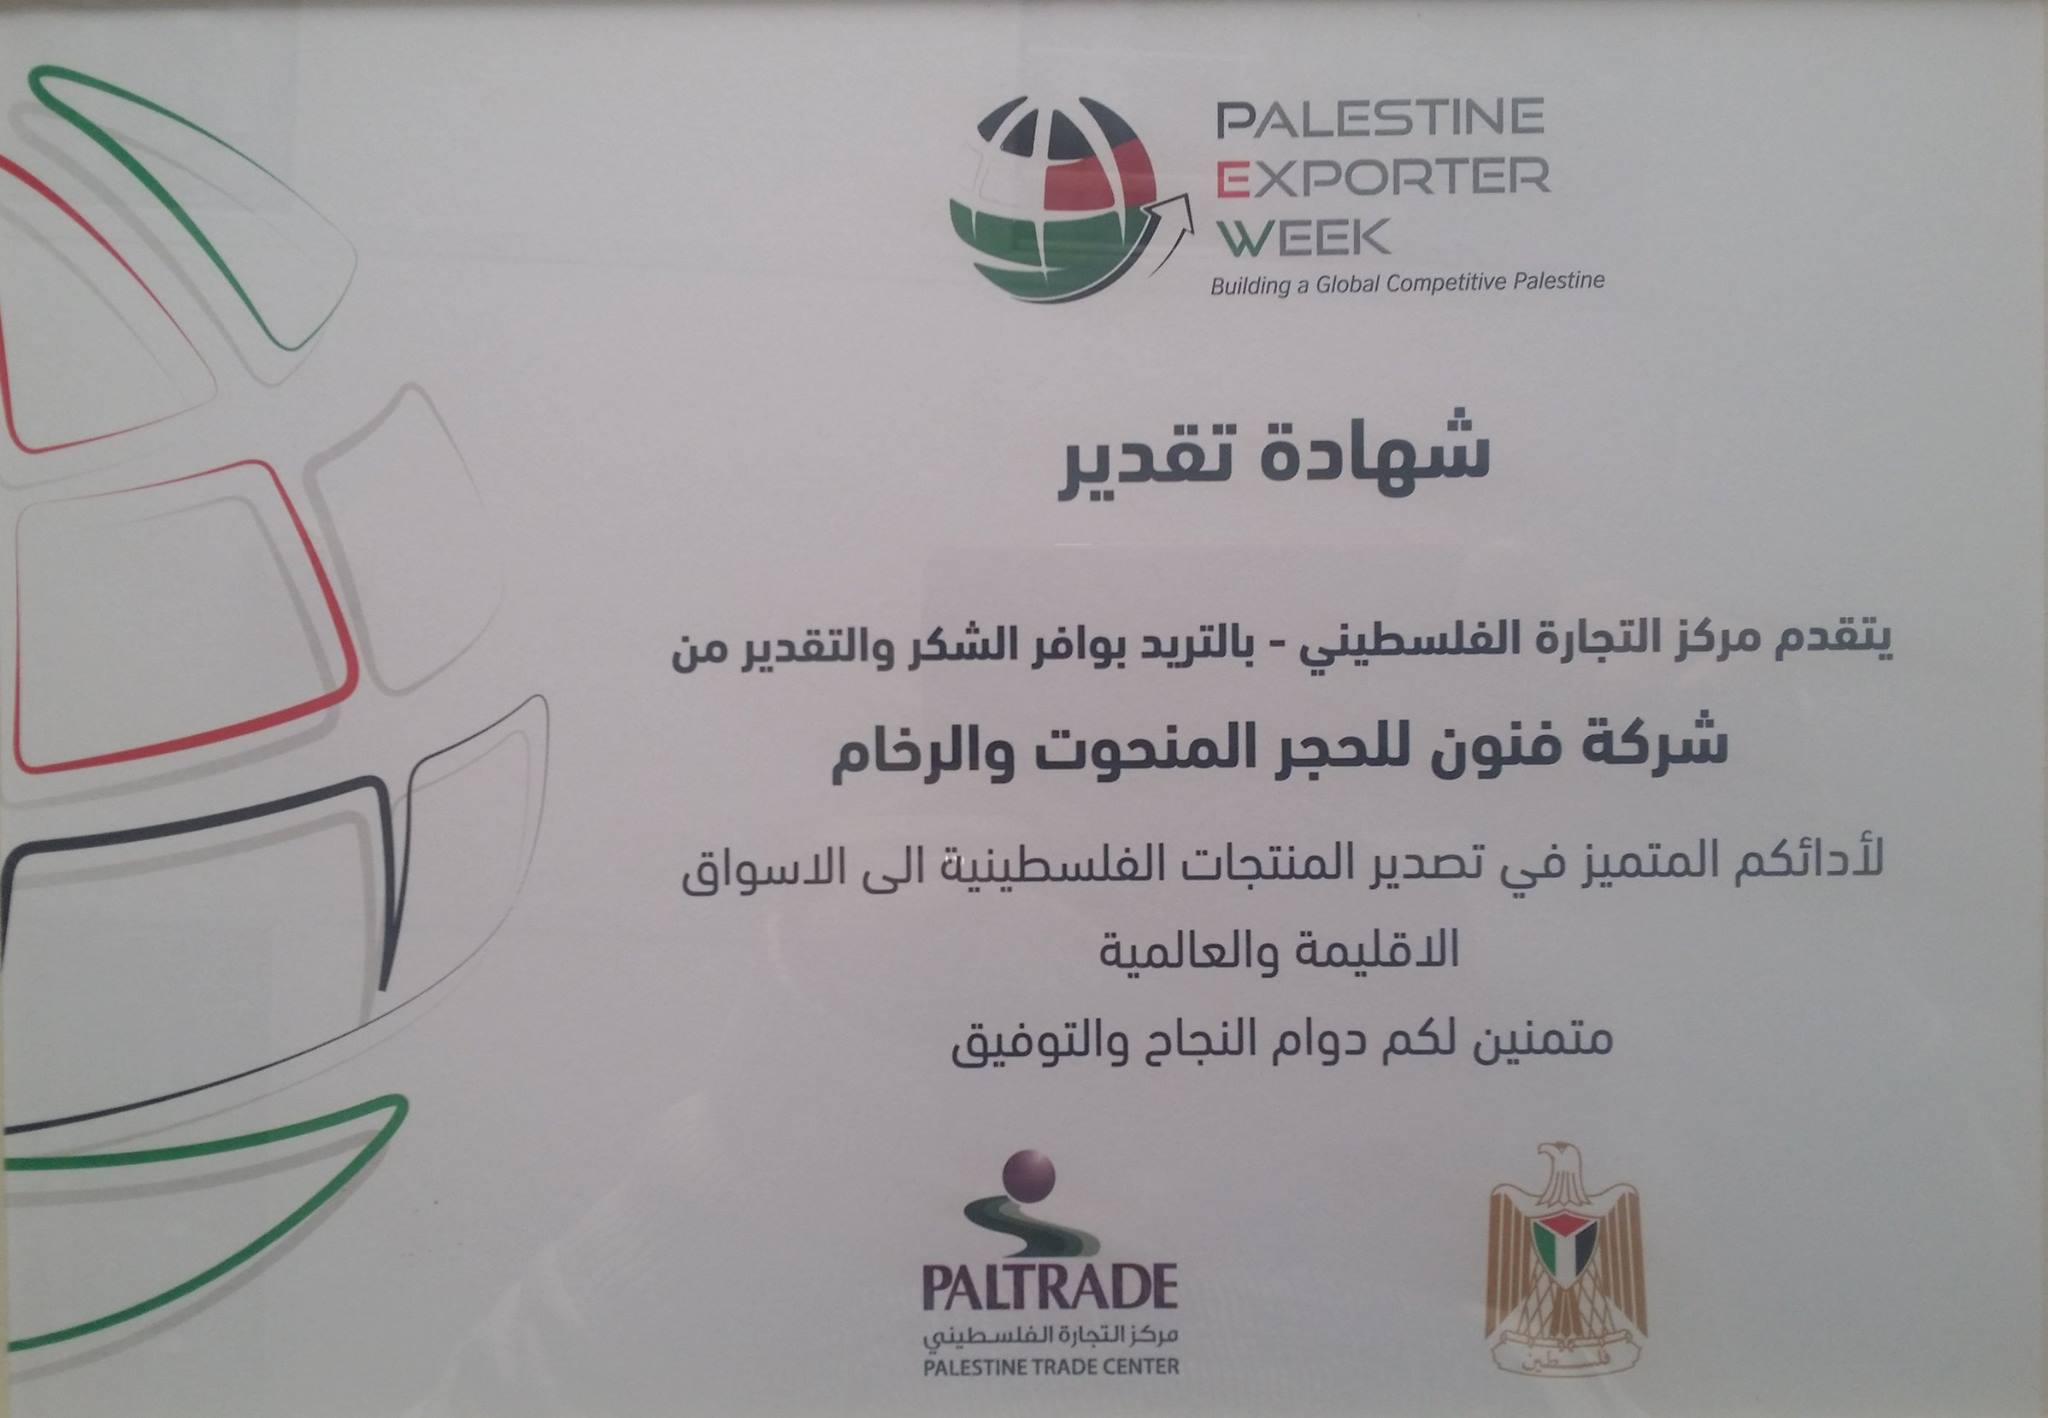 Palestinian Exporter Week - Certificate of Appreciation